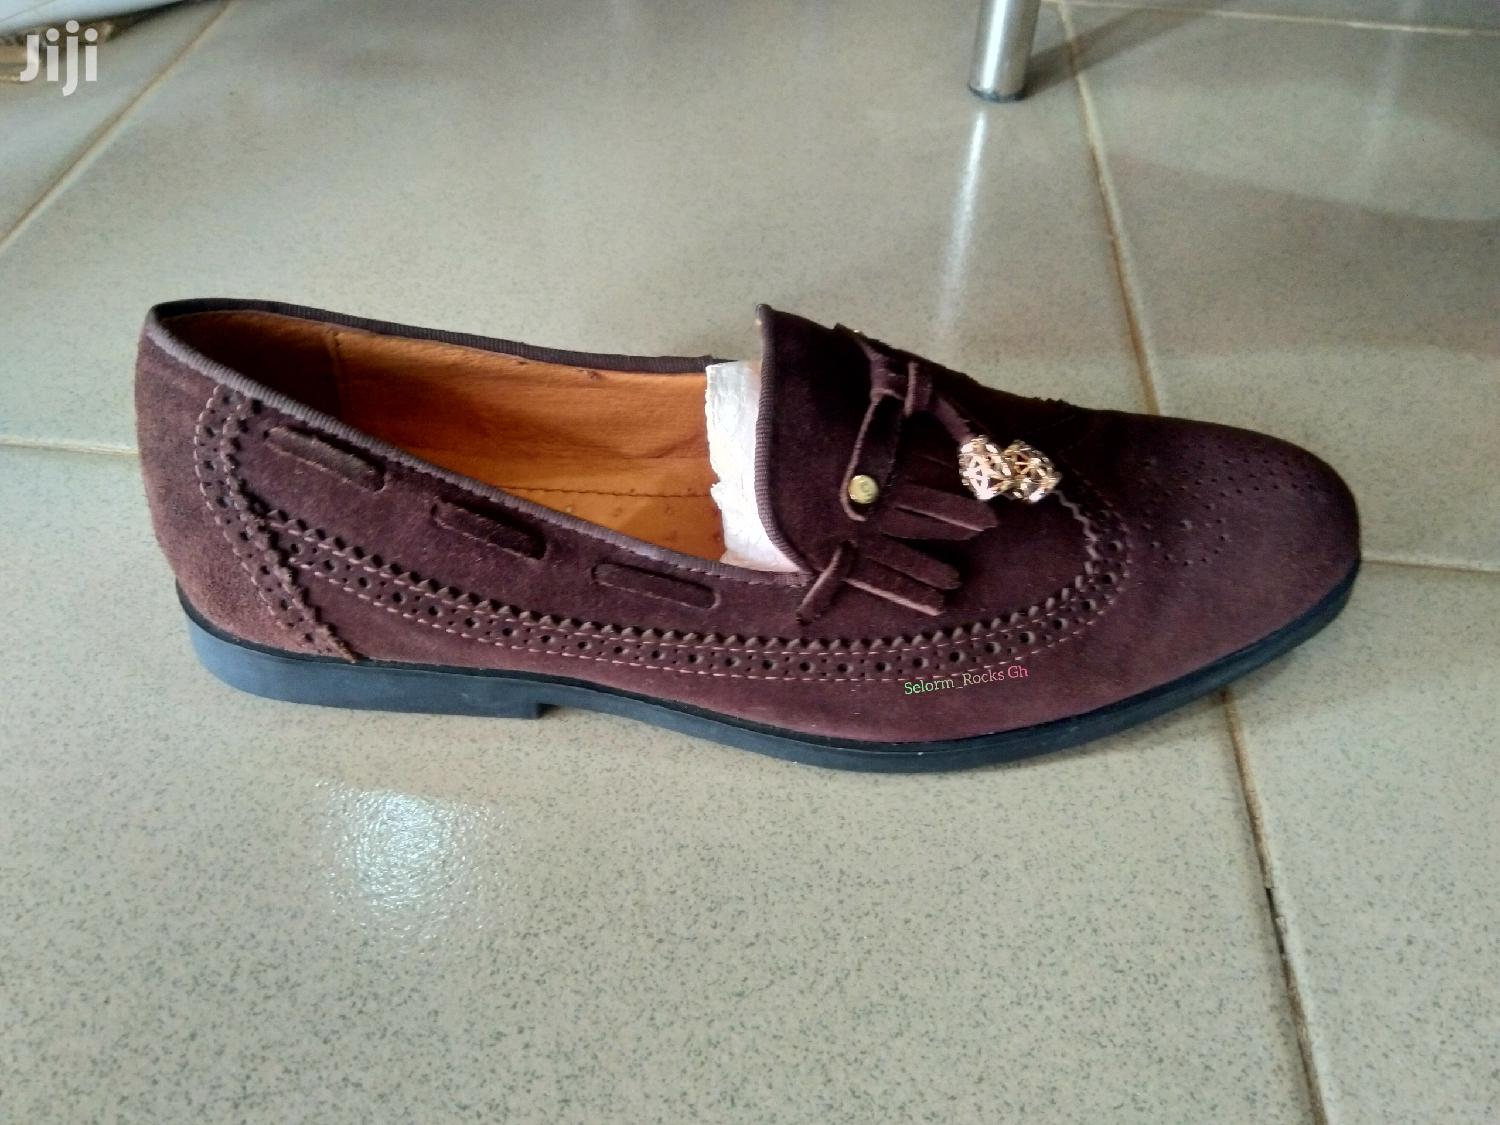 Authentic Ring My Bell Clarks Loafers